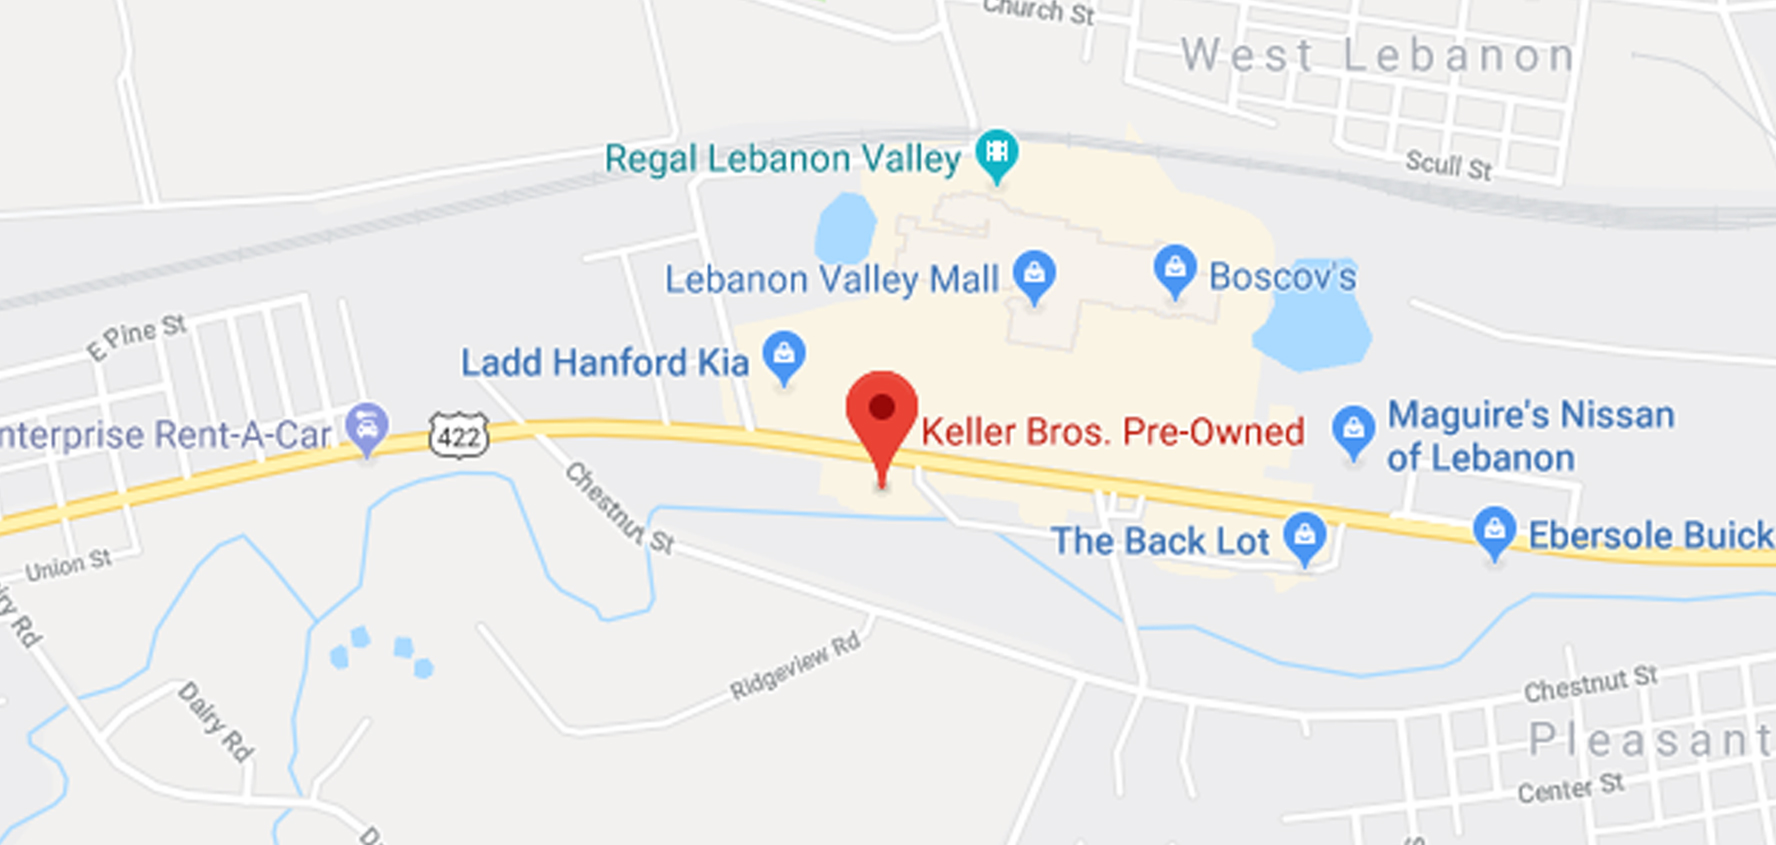 keller brothers pre-owned map